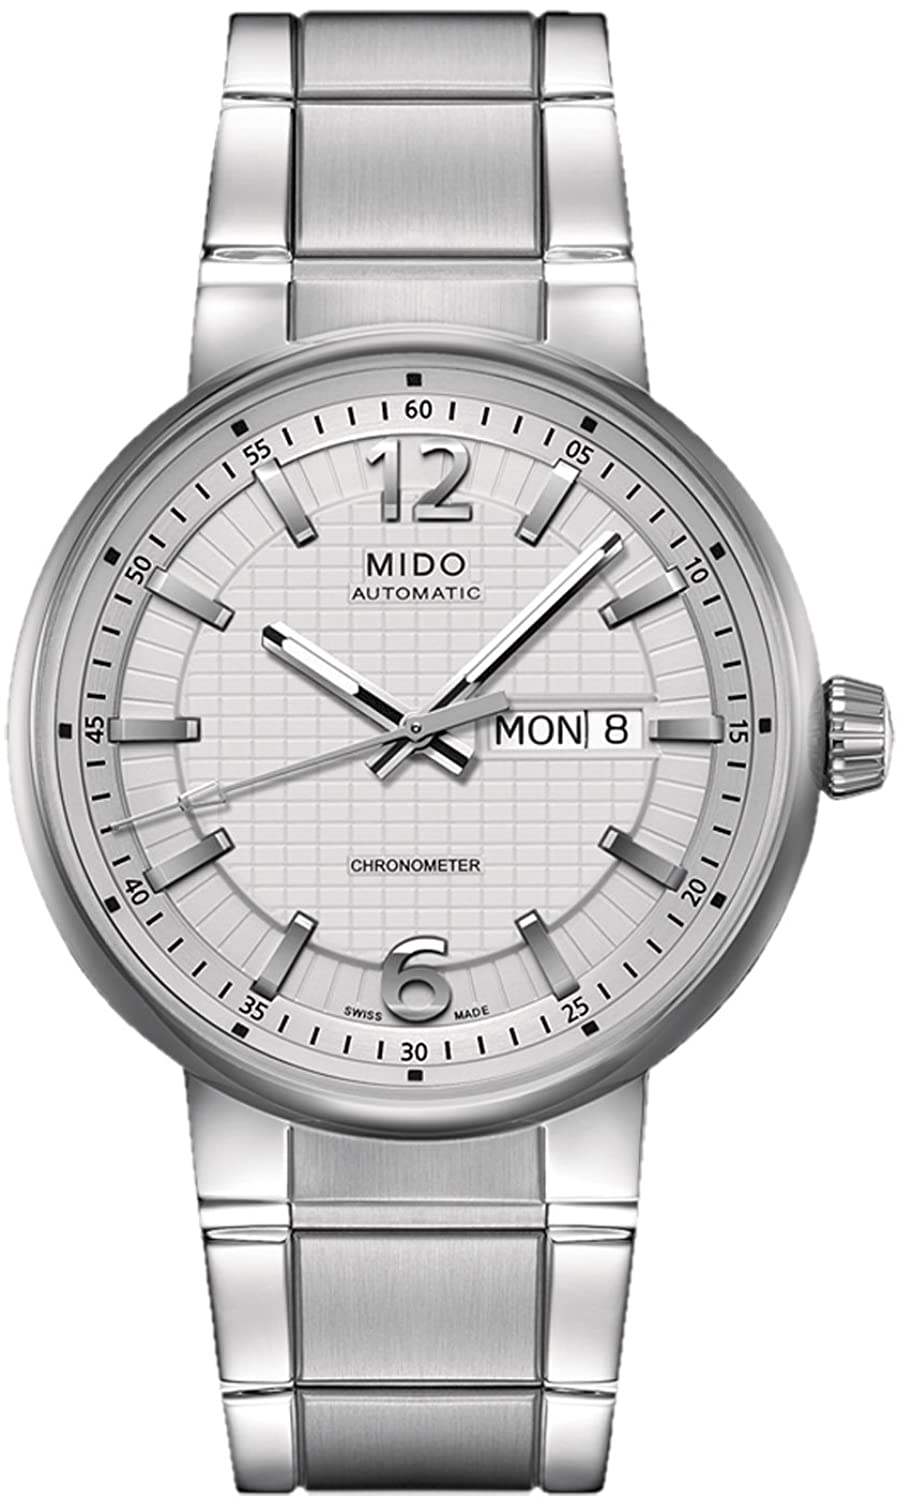 Mido Great Wall Automatic Men's Watch M017.631.11.037.00